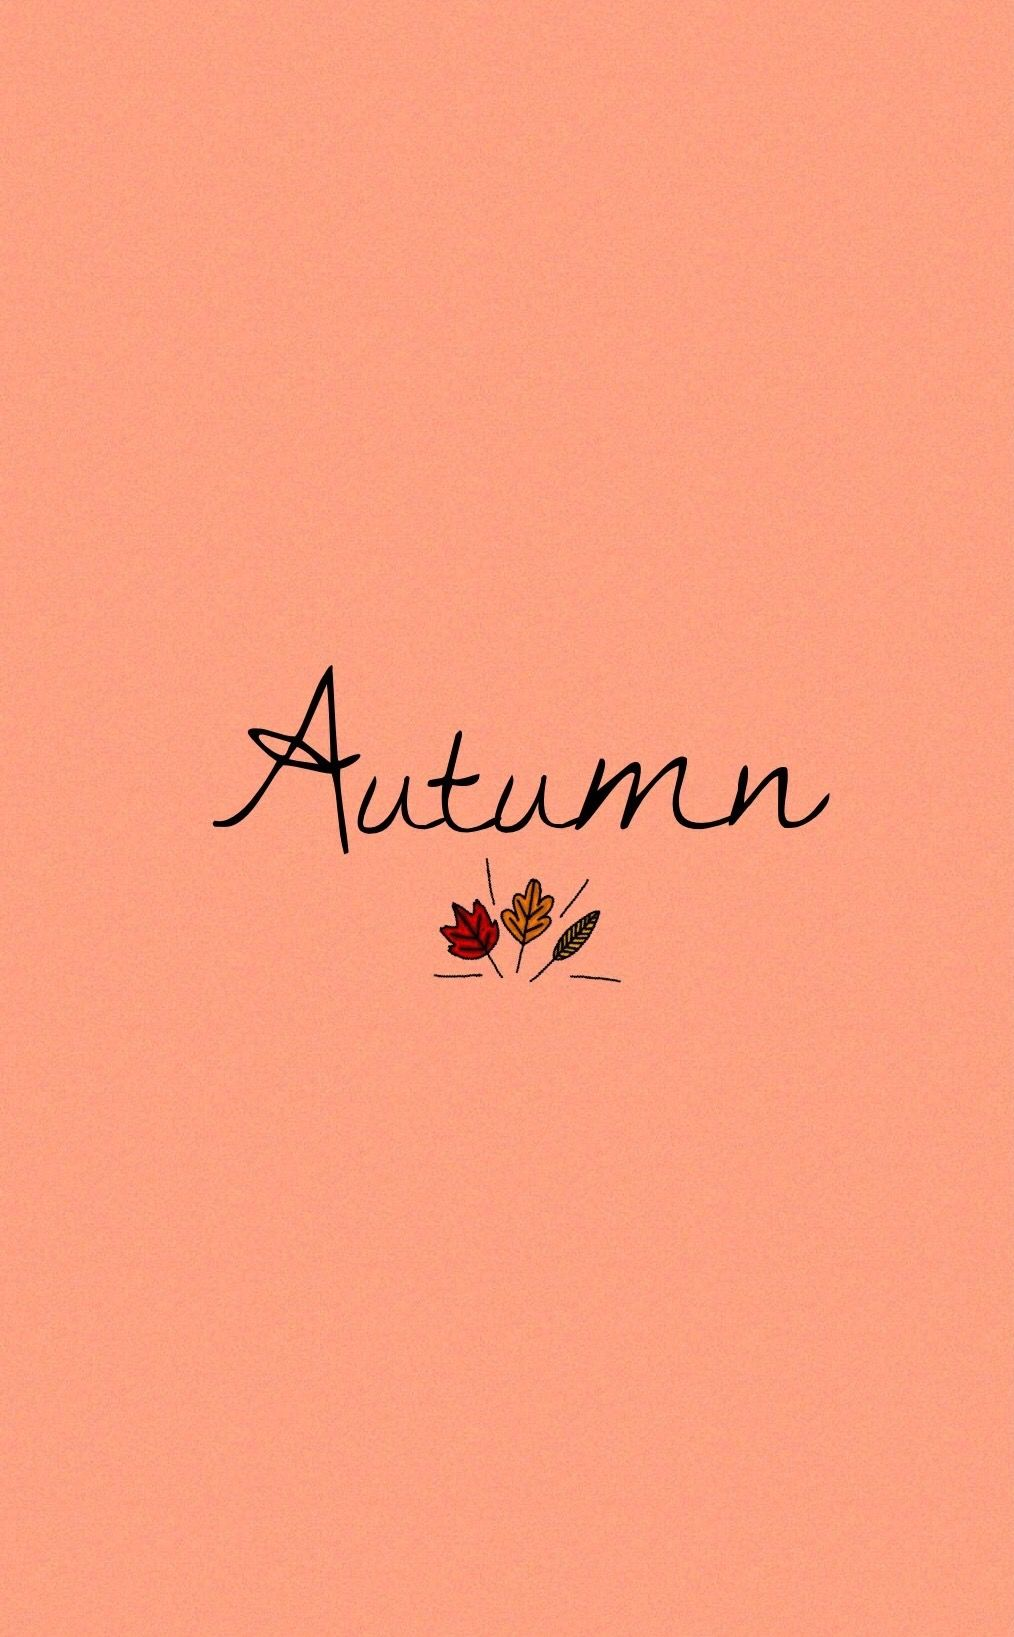 Cute Aesthetic Wallpapers Fall